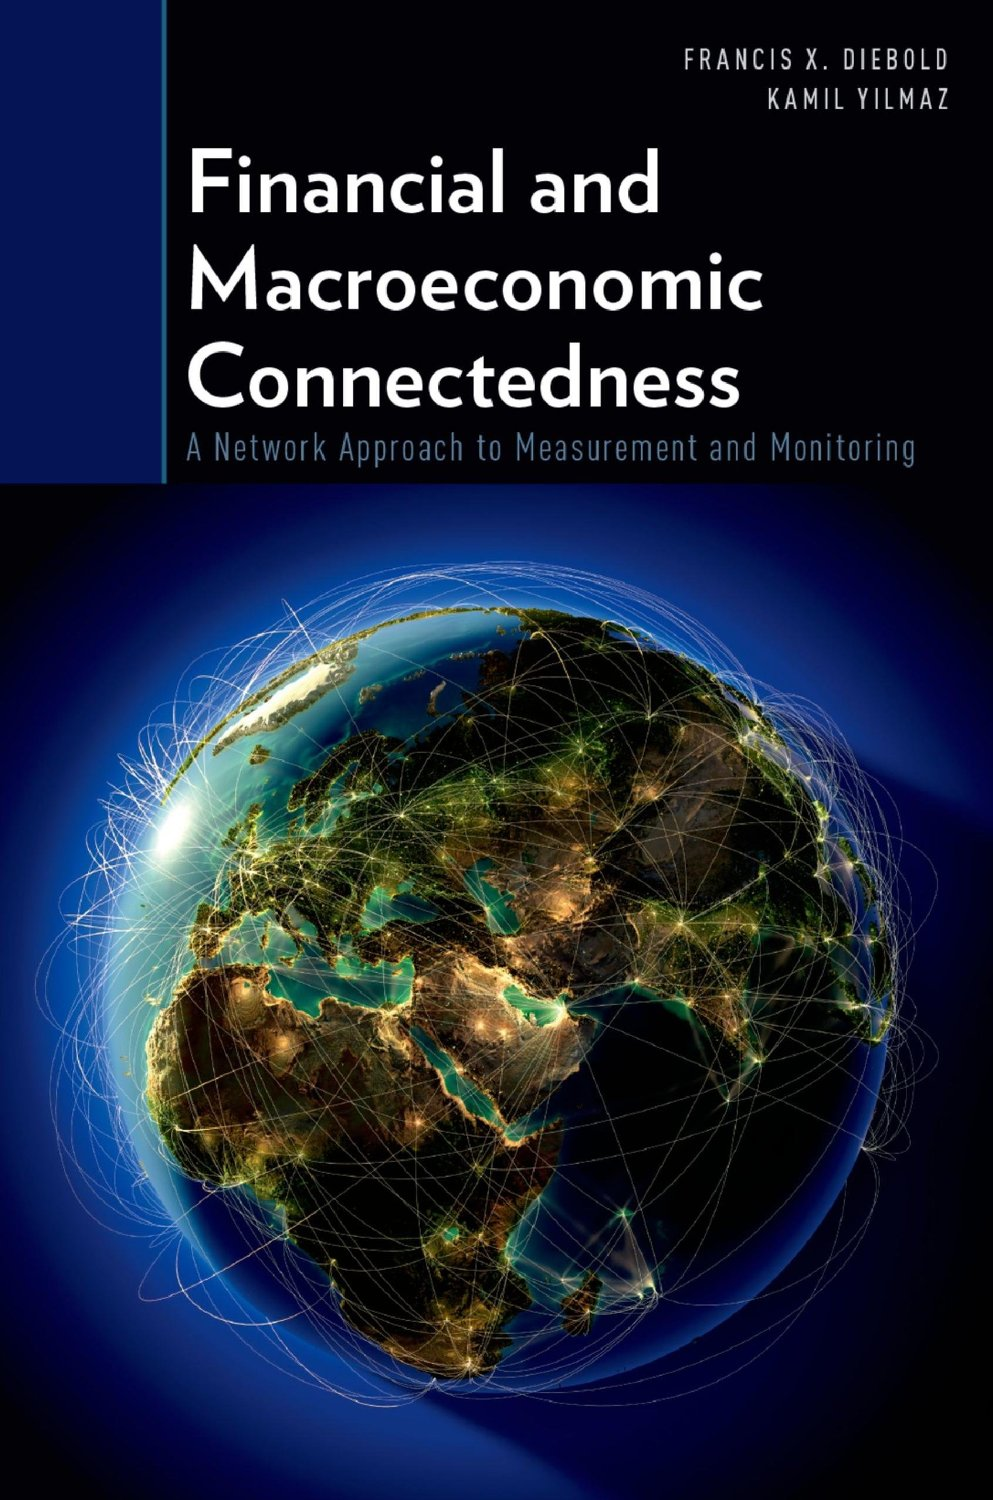 http://www.amazon.com/Financial-Macroeconomic-Connectedness-Measurement-Monitoring-ebook/dp/B00SAUJNFU/ref=sr_1_7?s=books&ie=UTF8&qid=1423485224&sr=1-7&keywords=diebold